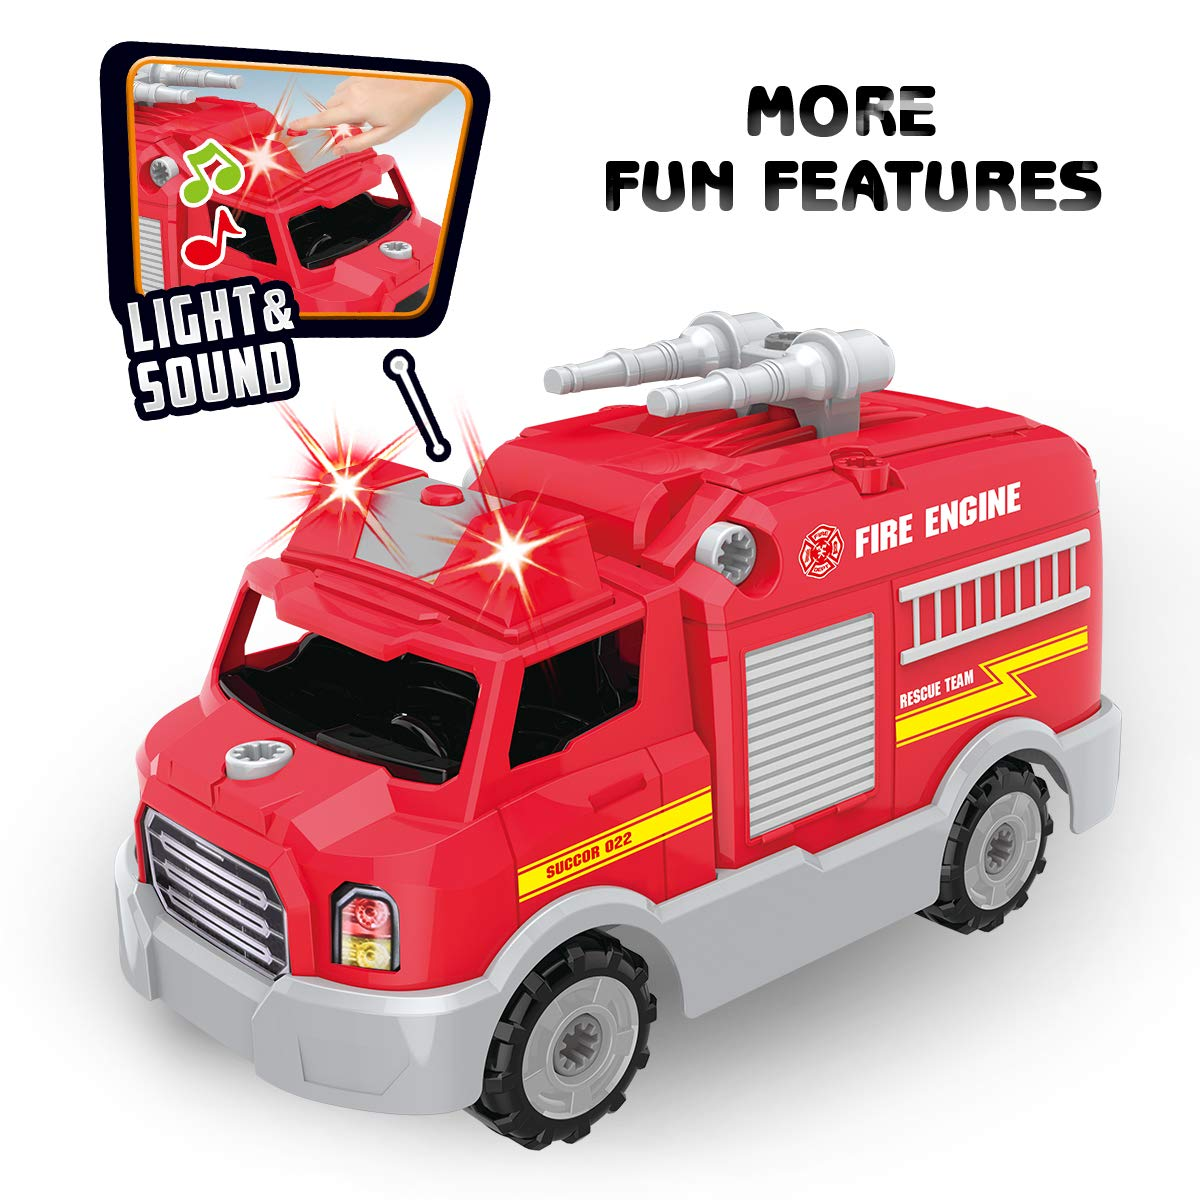 REMOKING STEM Learning Take Apart Toy for Boys & Girls, Build Your Own Car Toy Fire Truck Educational Playset with Tools and Power Drill, DIY Assembly Car with Realistic Sounds & Lights (3+ Ages) by REMOKING (Image #4)